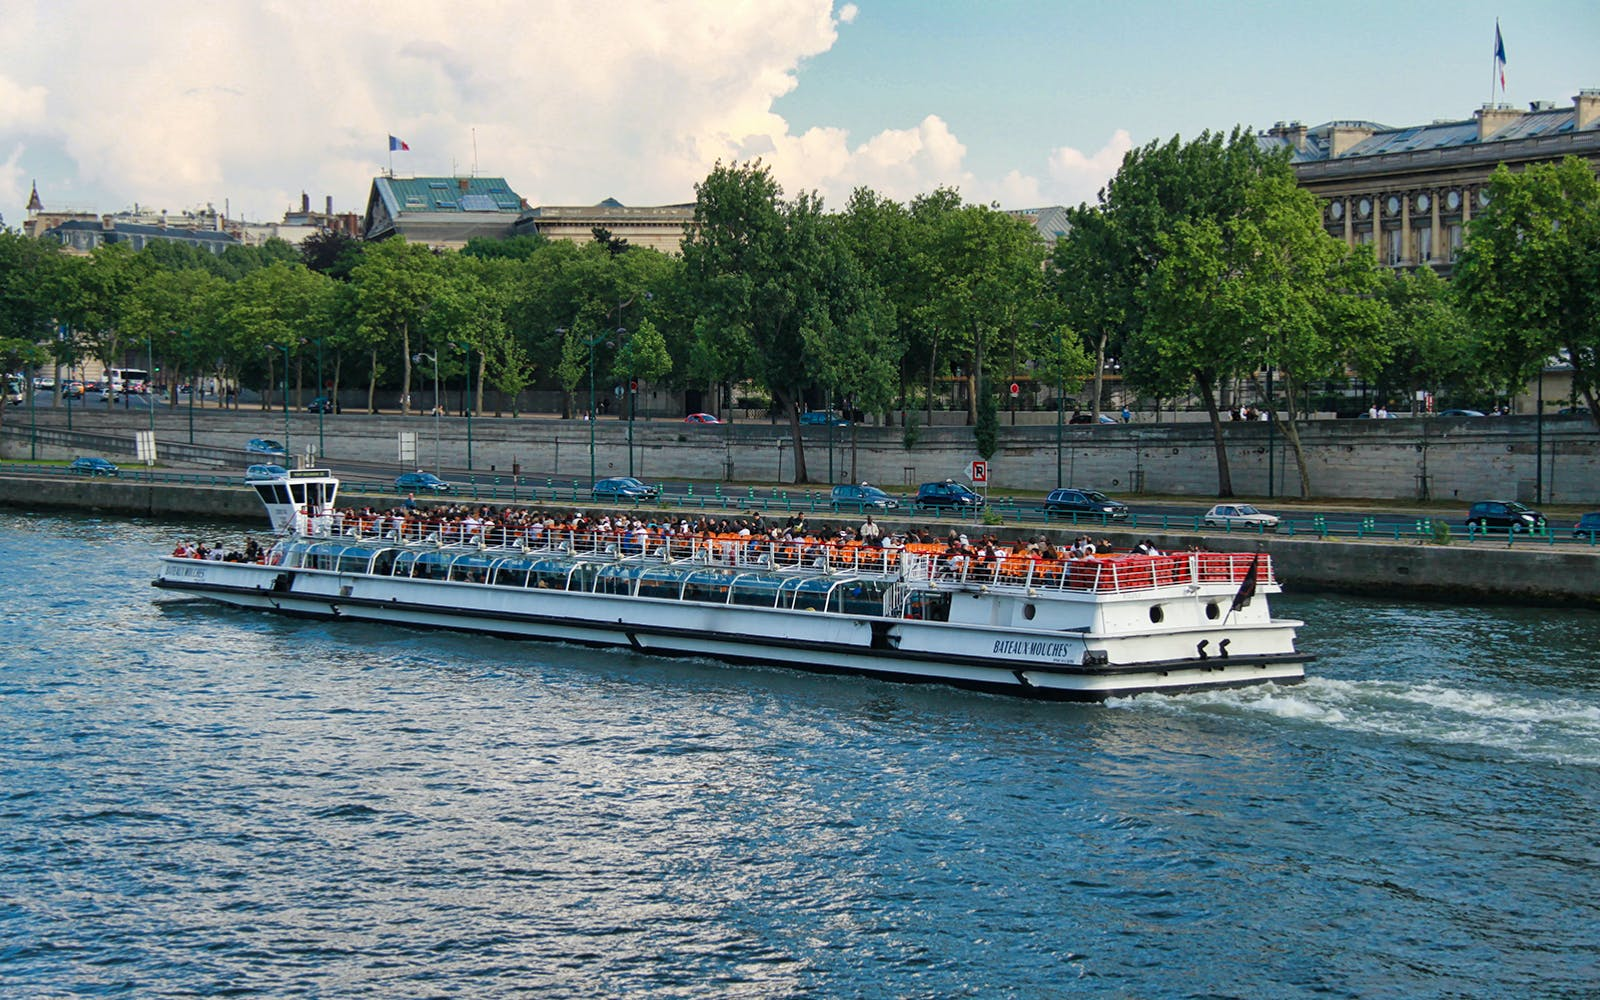 bateaux mouches: seine river sightseeing cruise with live commentary-2